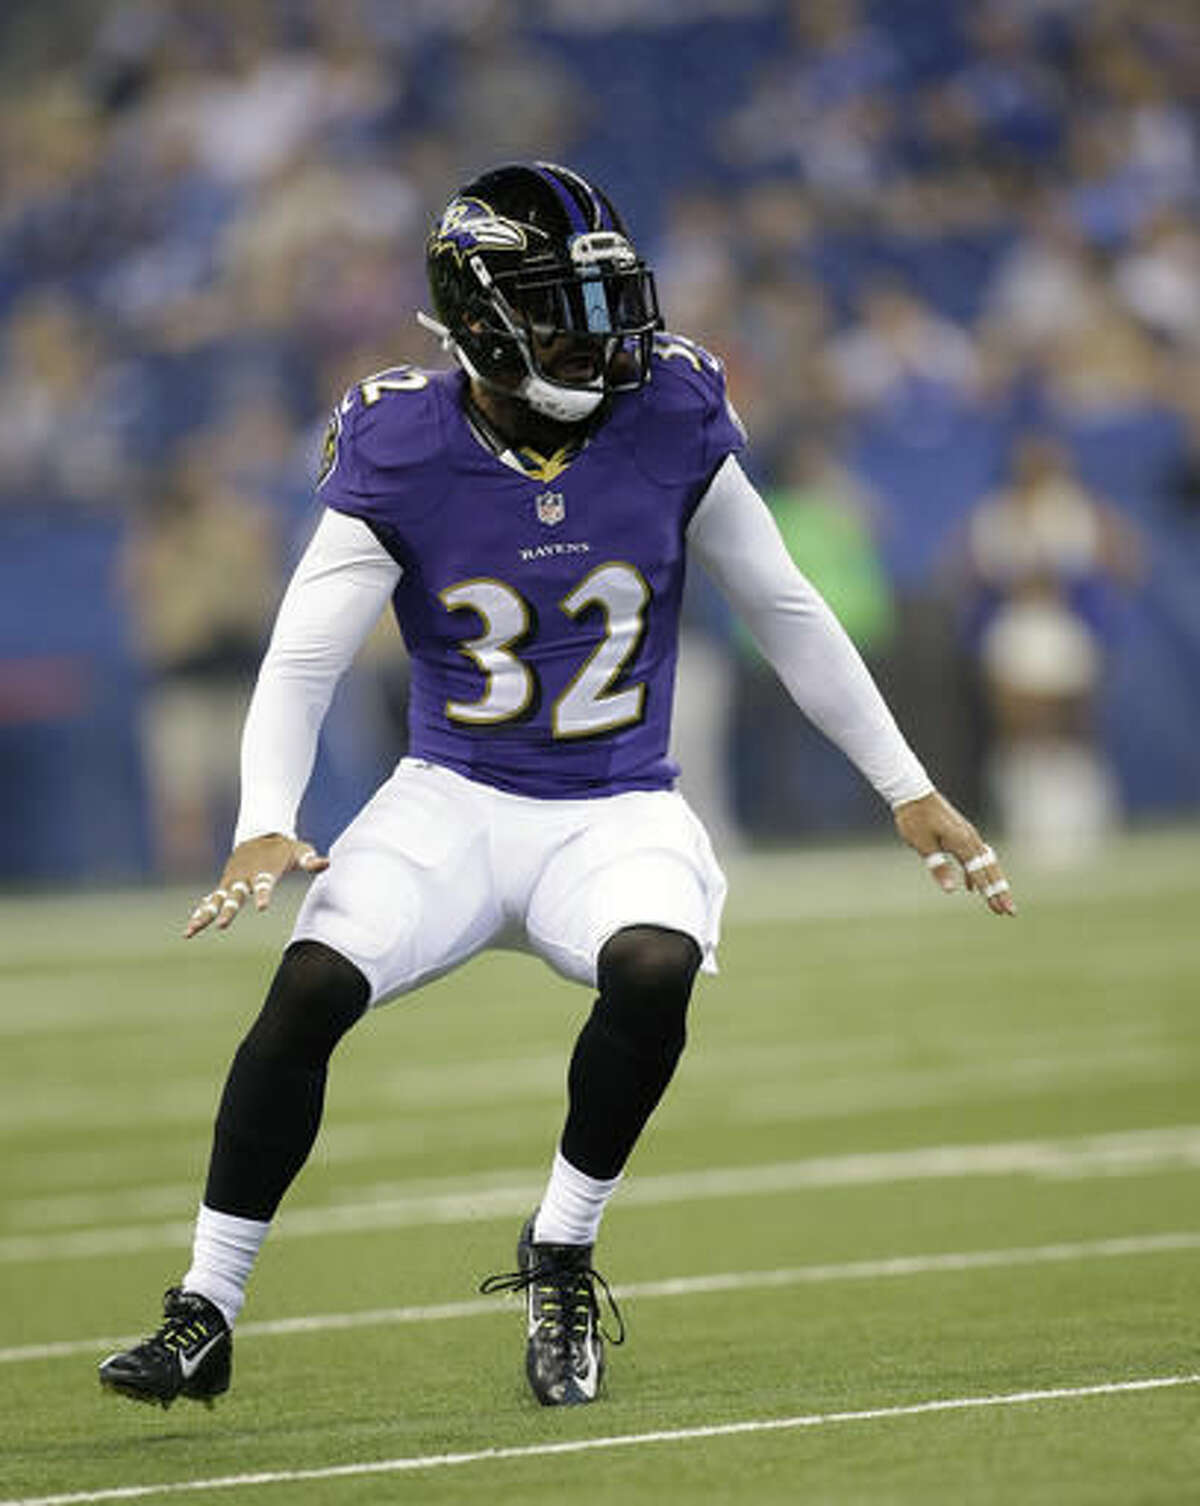 100. Eric Weddle, safety (Los Angeles Rams)